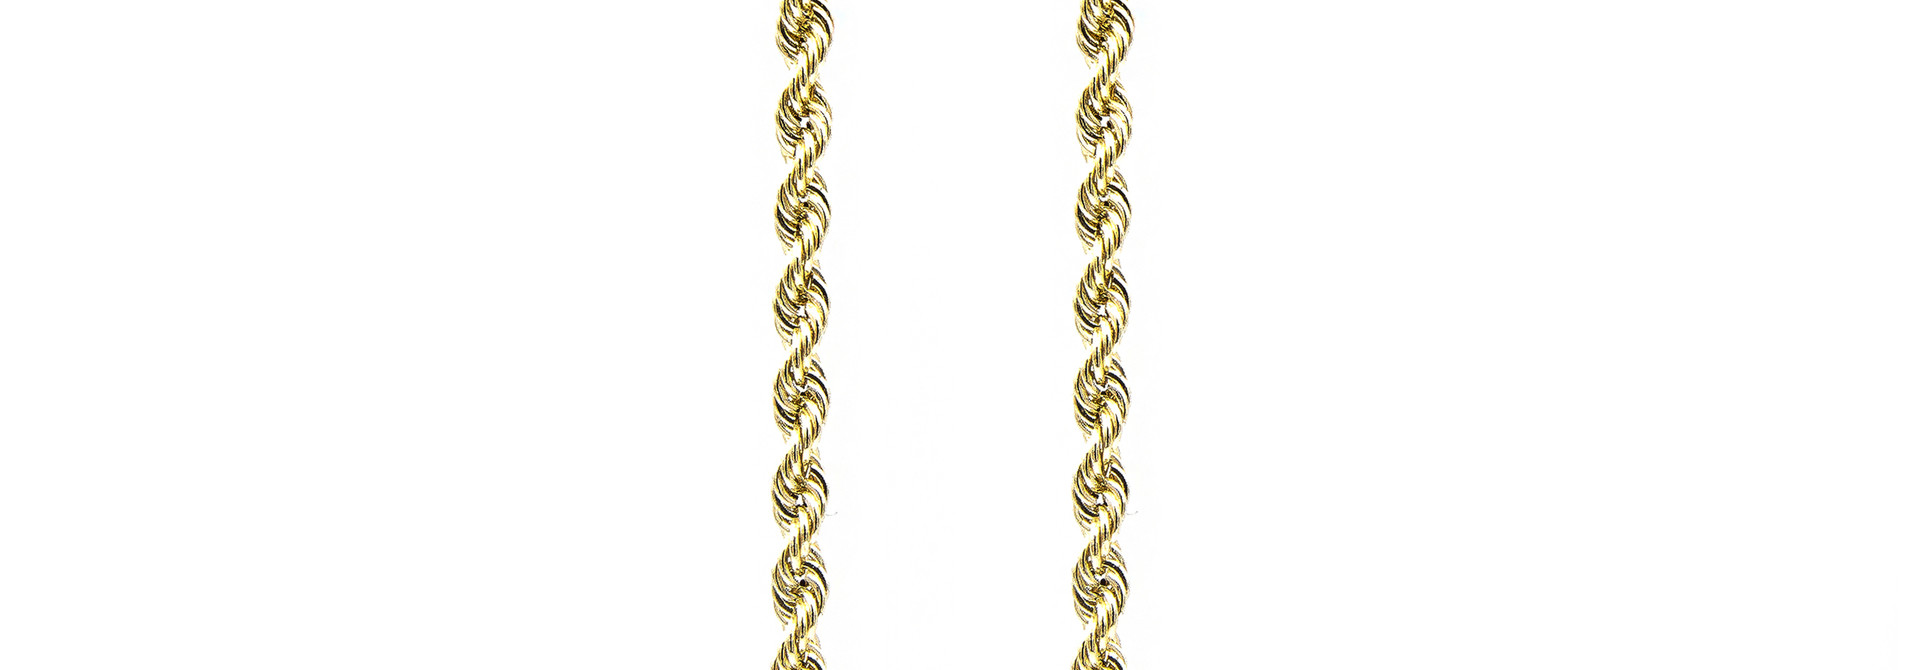 Rope Chain 14k - 4 mm